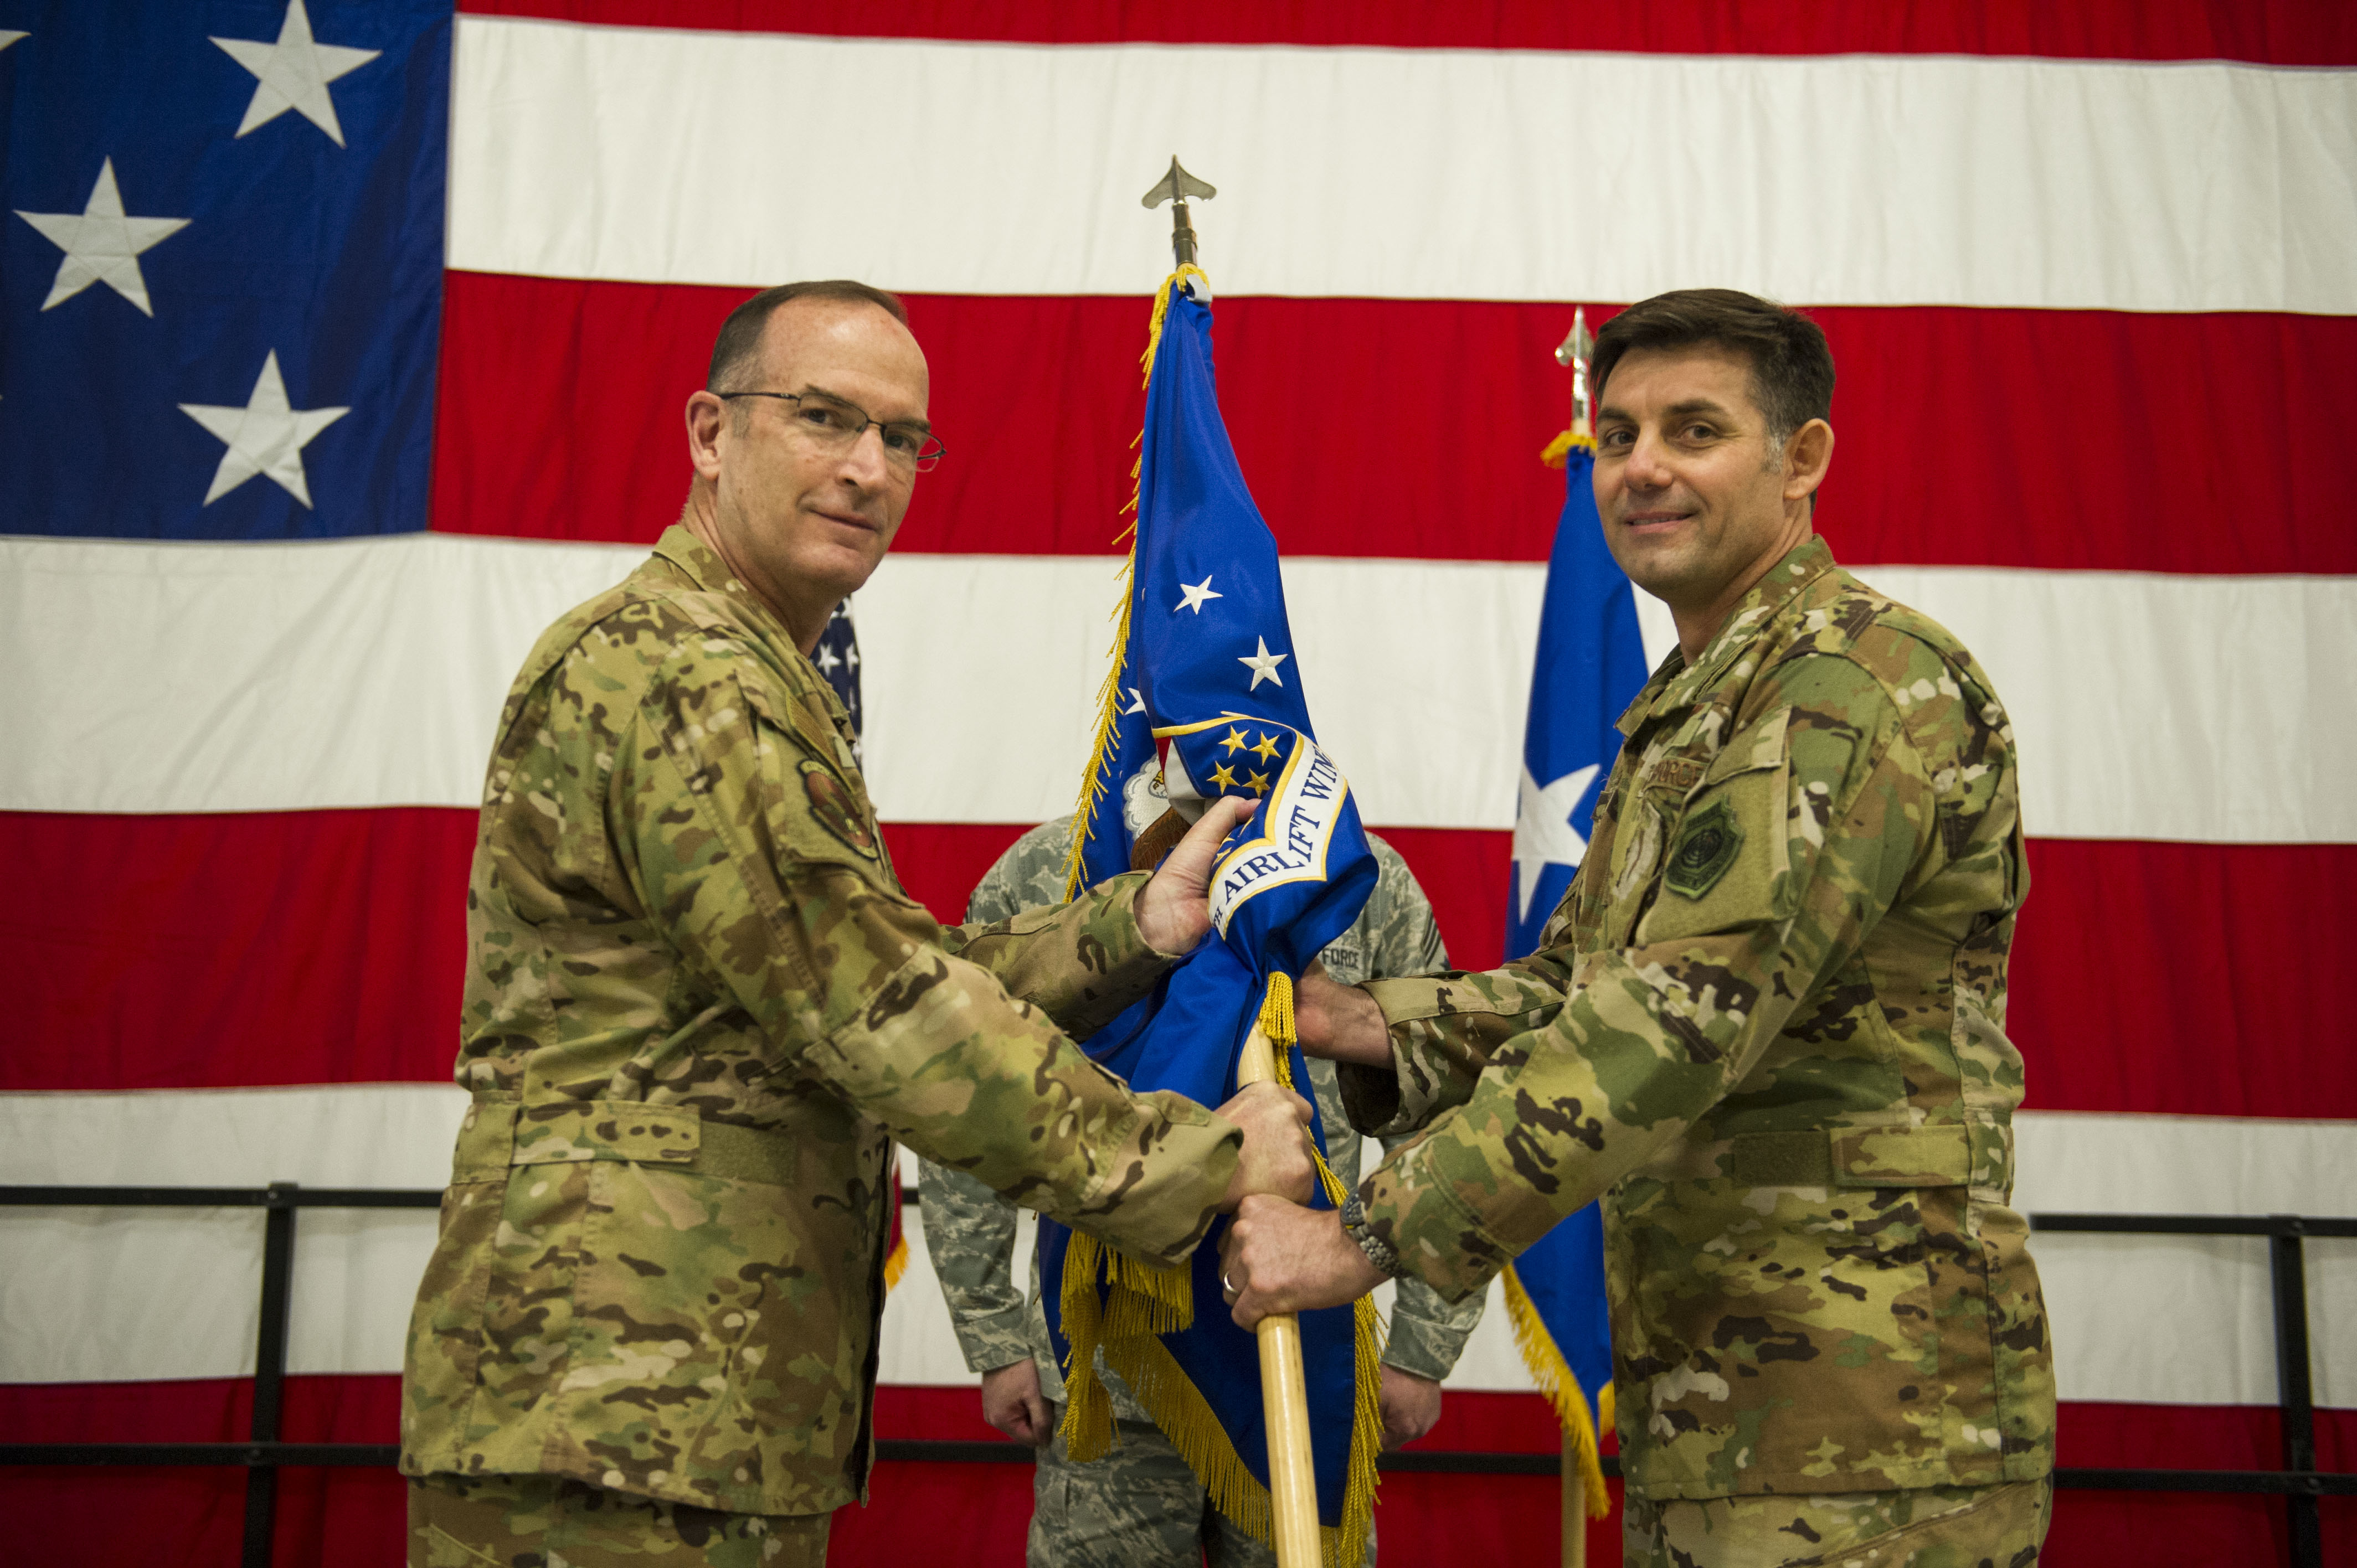 The Global Vikings kick off the New Year and decade with a new wing commander